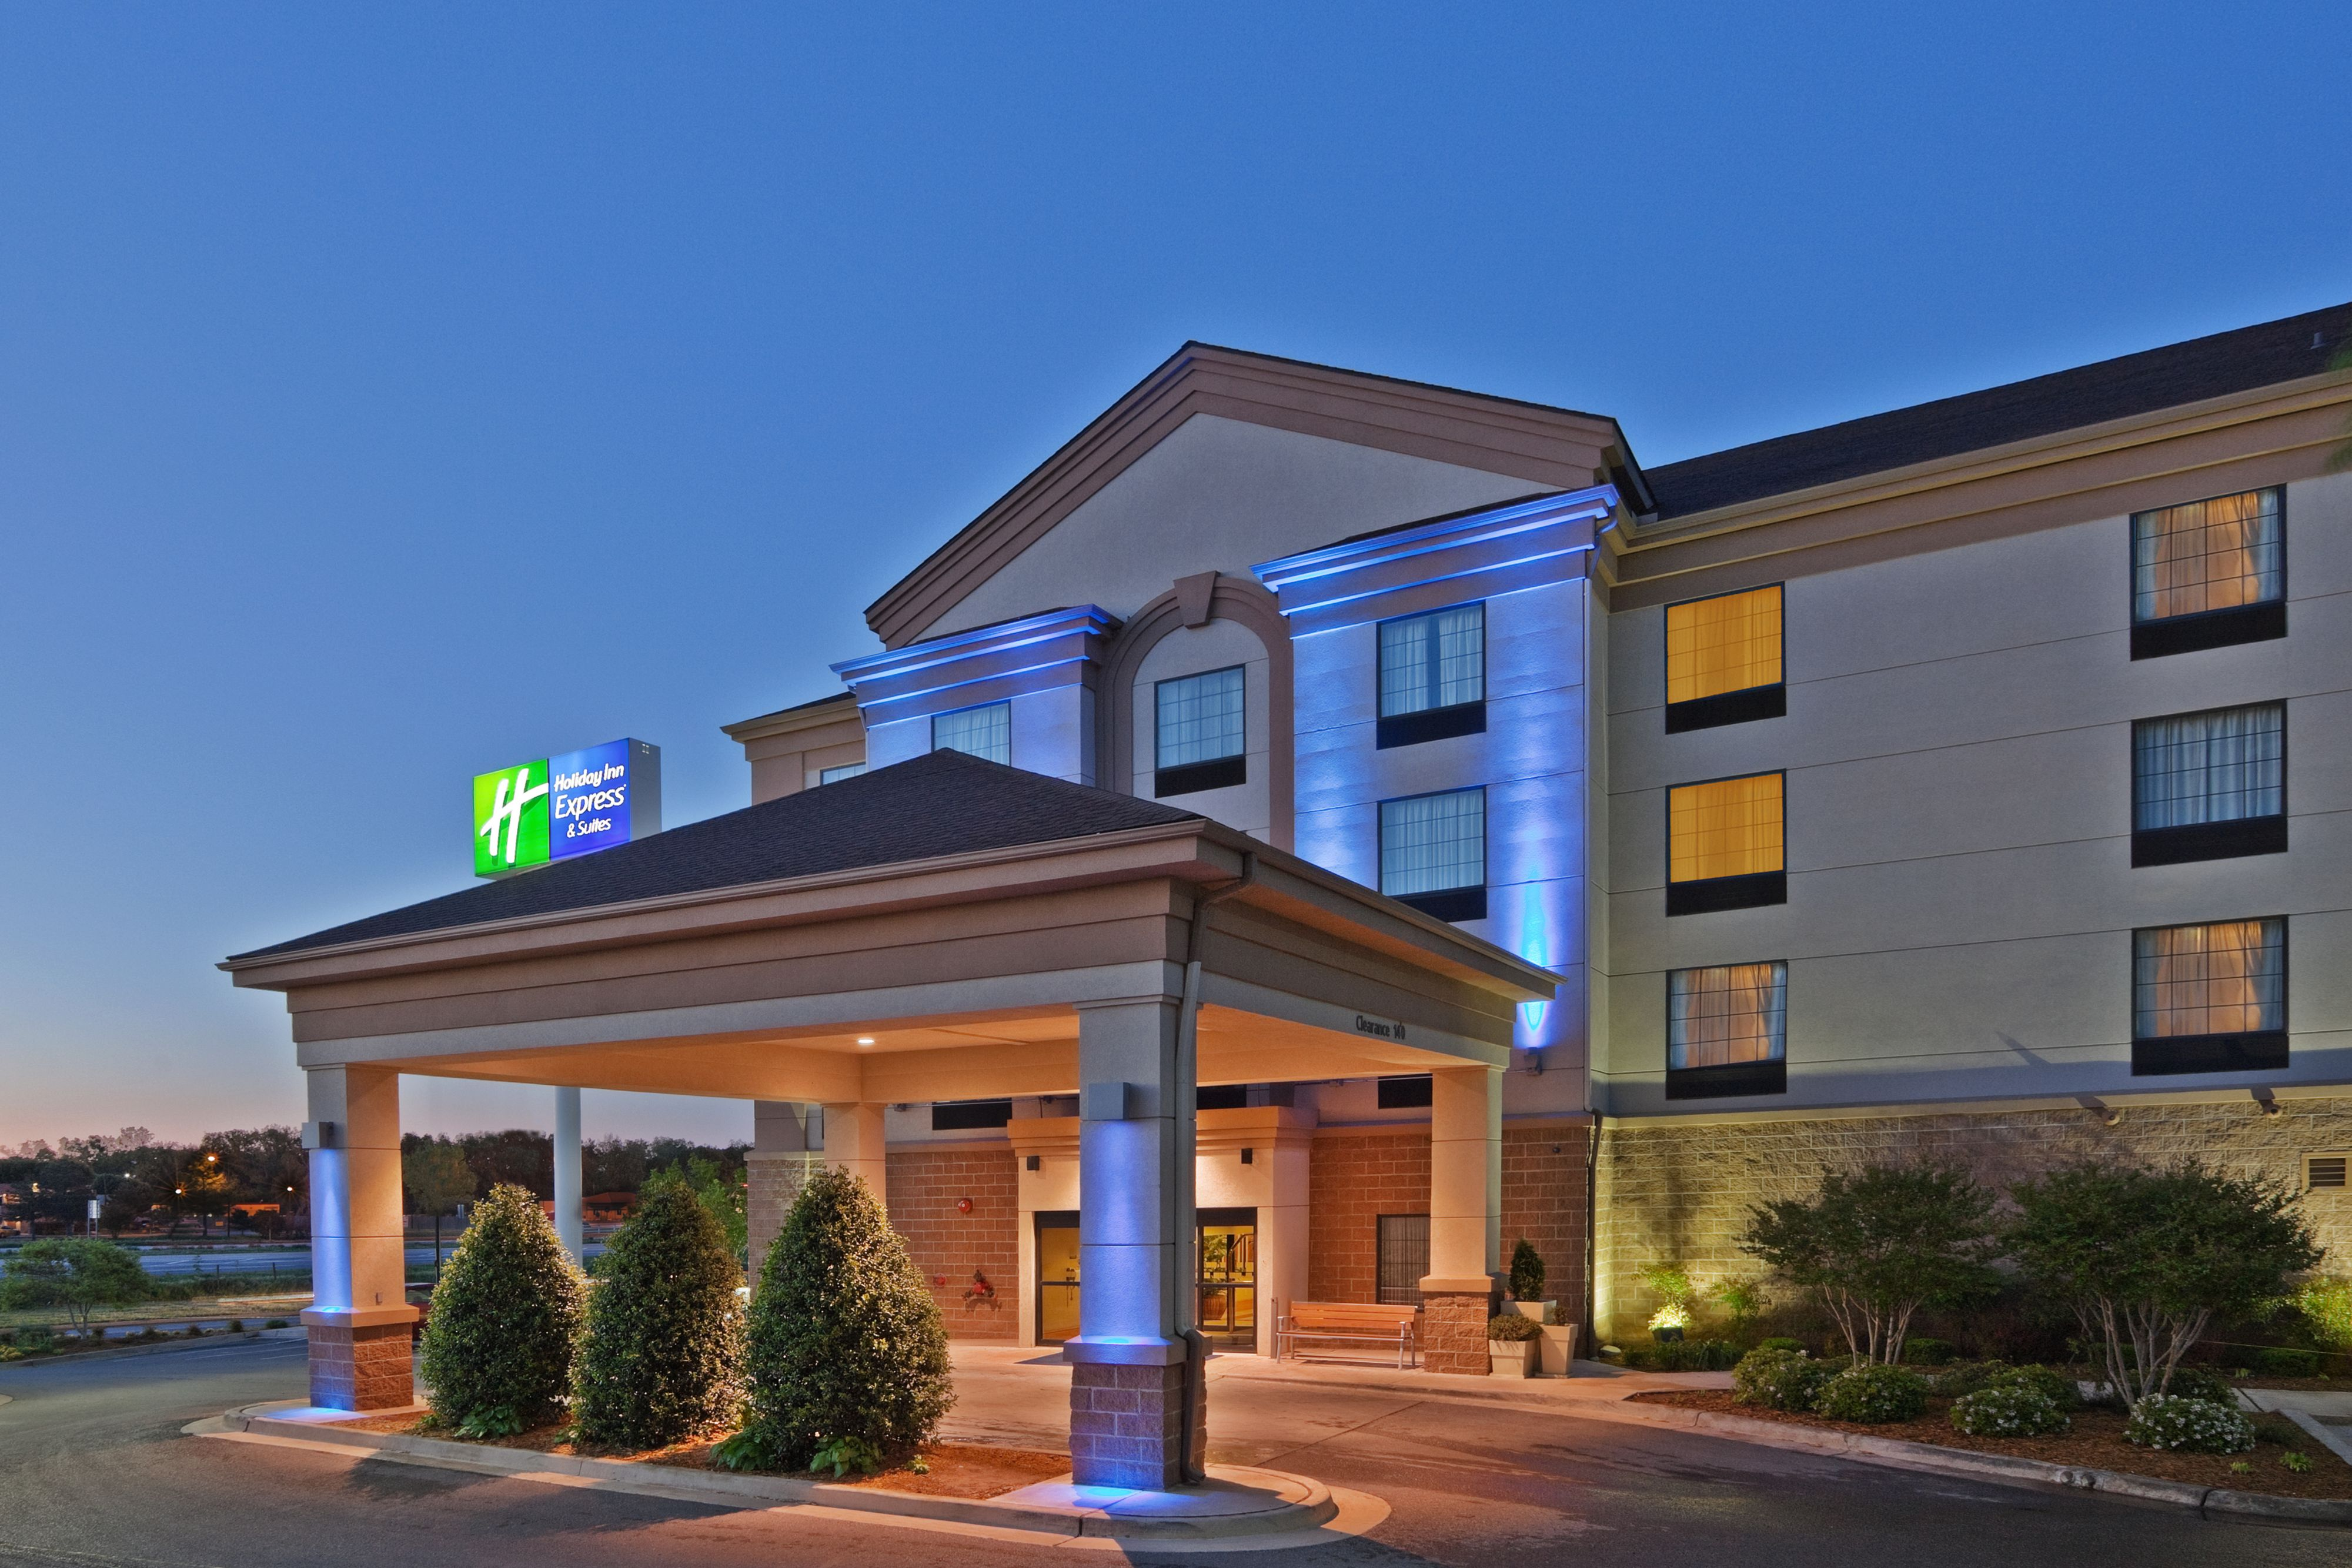 Holiday Inn Express & Suites Lawrence image 5